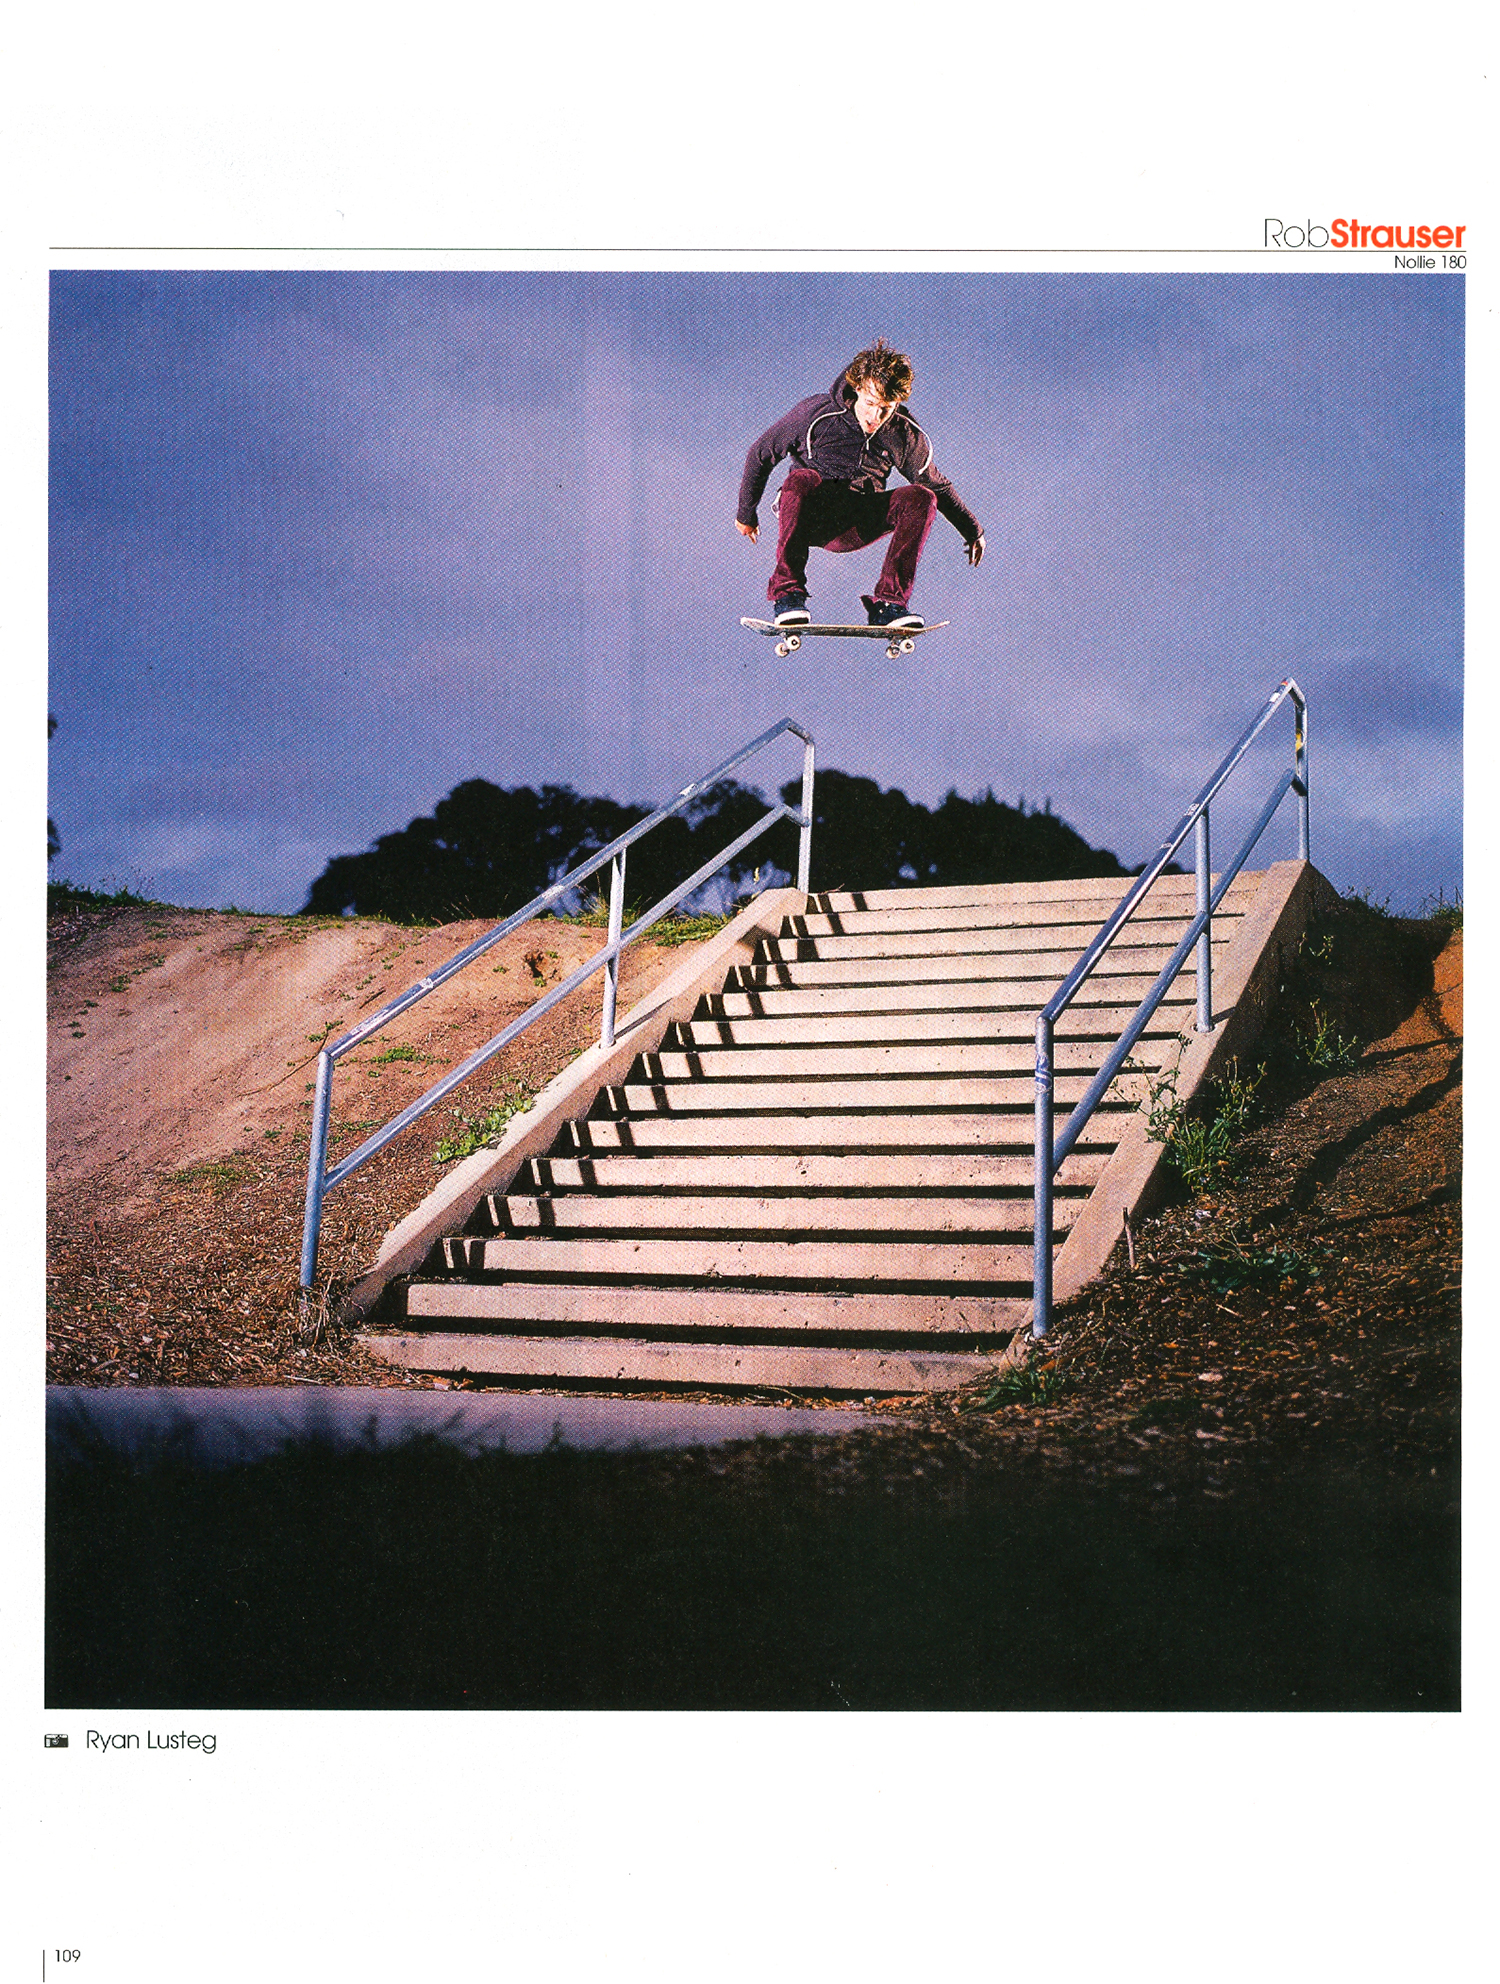 30_rob_straser_photo_feature_skateboarder.jpg